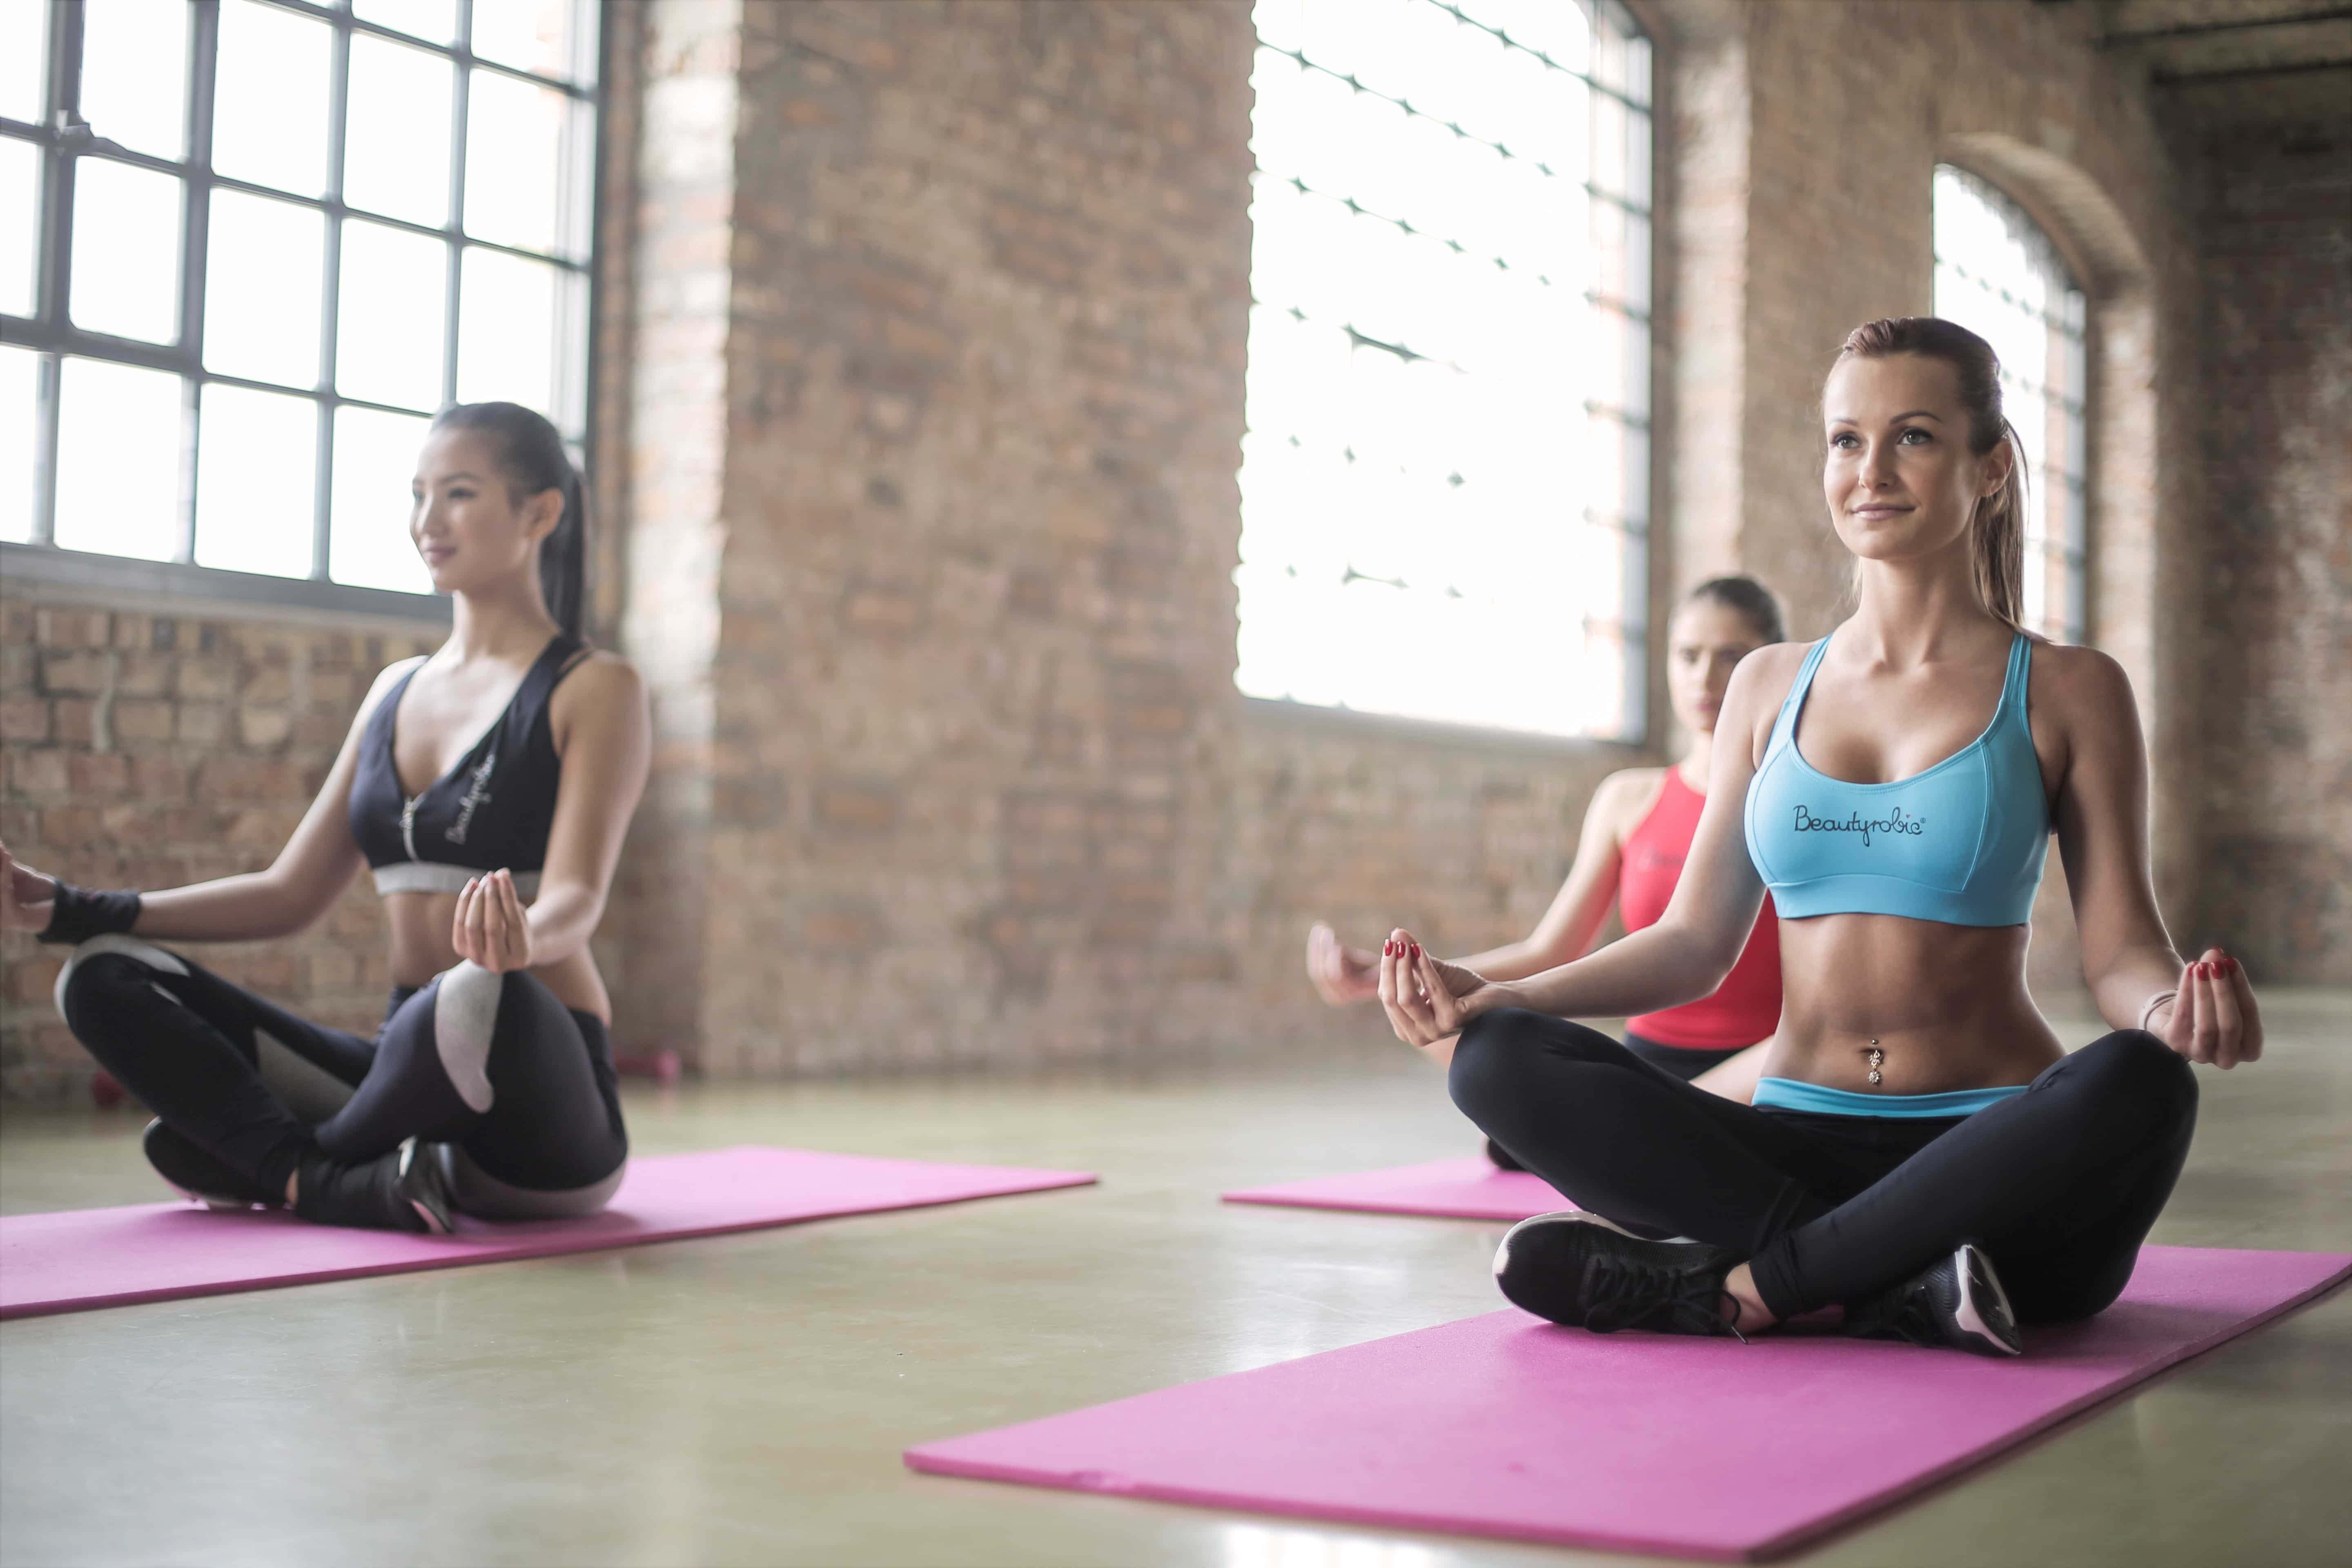 Fitness trends in 2019 will embrace technology and body awareness